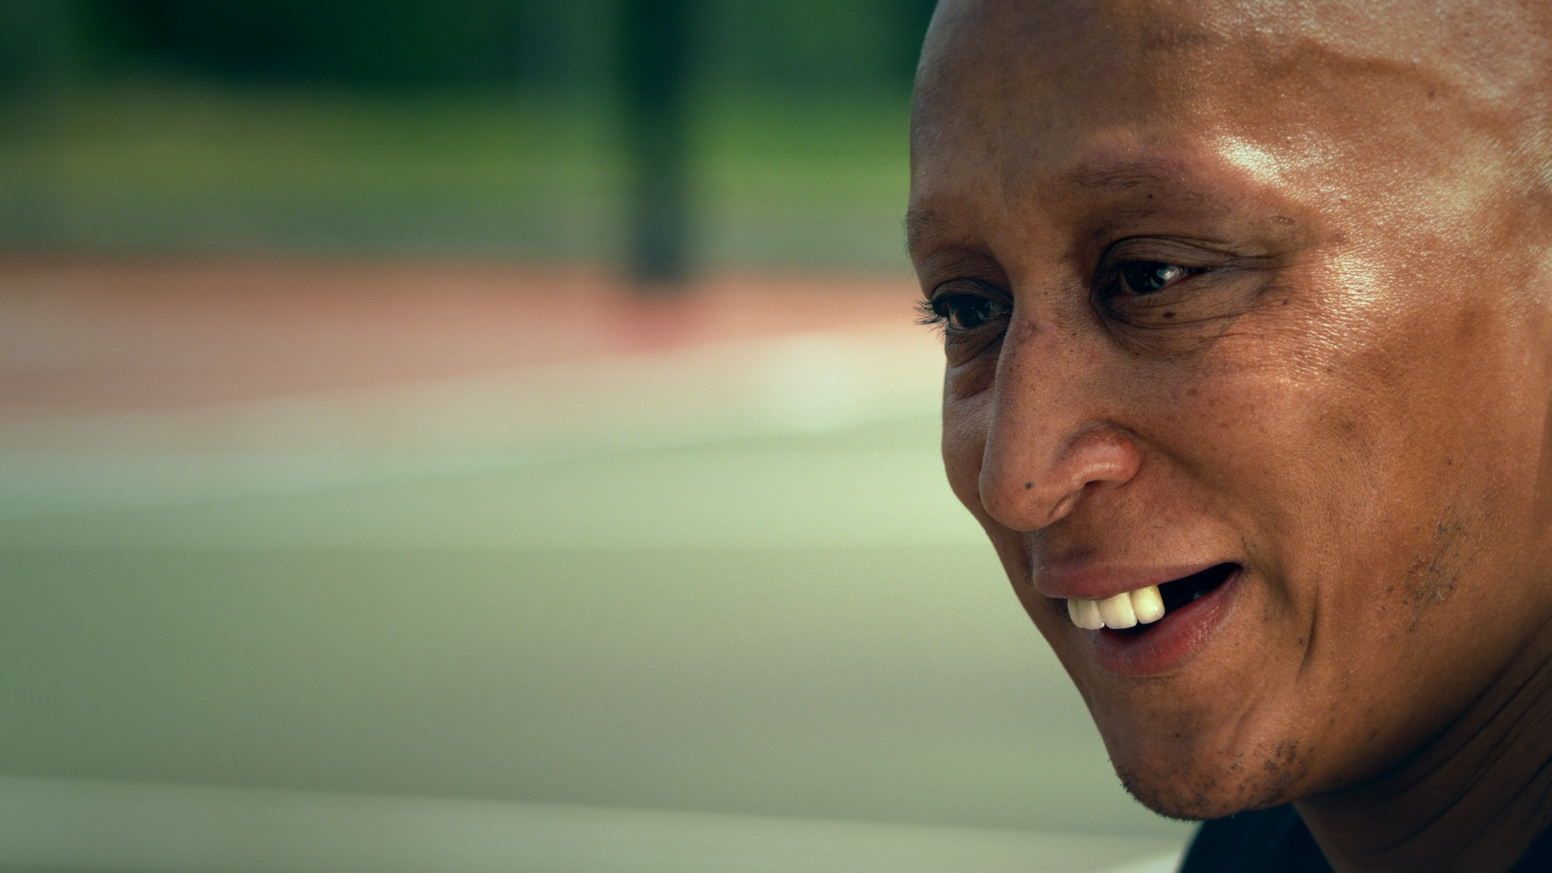 """A documentary film about the quixotic life of NYC playground legend and basketball savant Lloyd """"Swee' Pea"""" Daniels."""